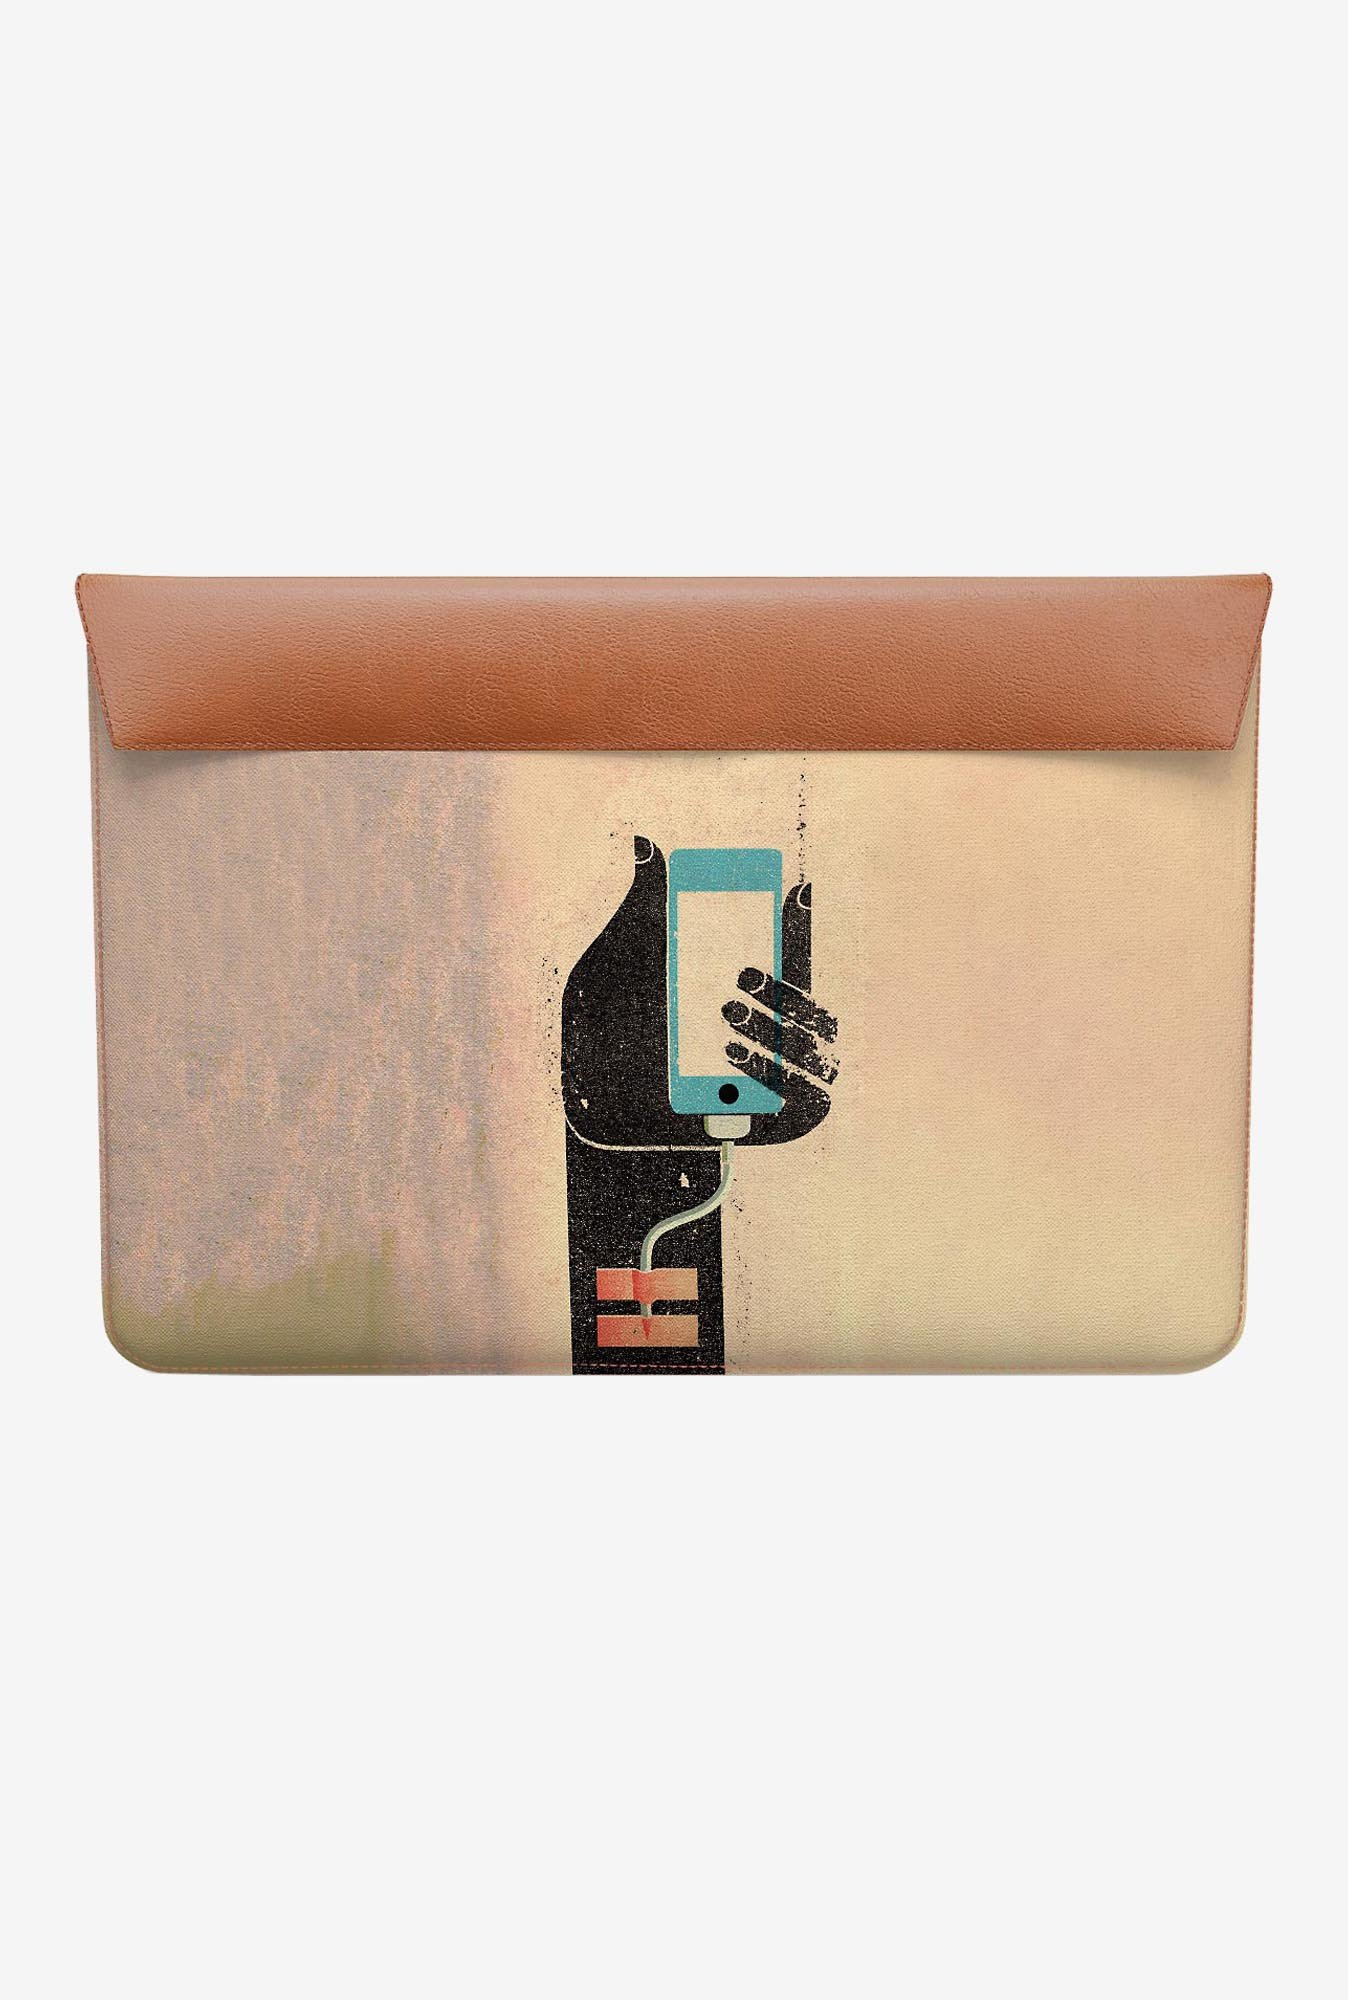 DailyObjects Lifeline MacBook 12 Envelope Sleeve